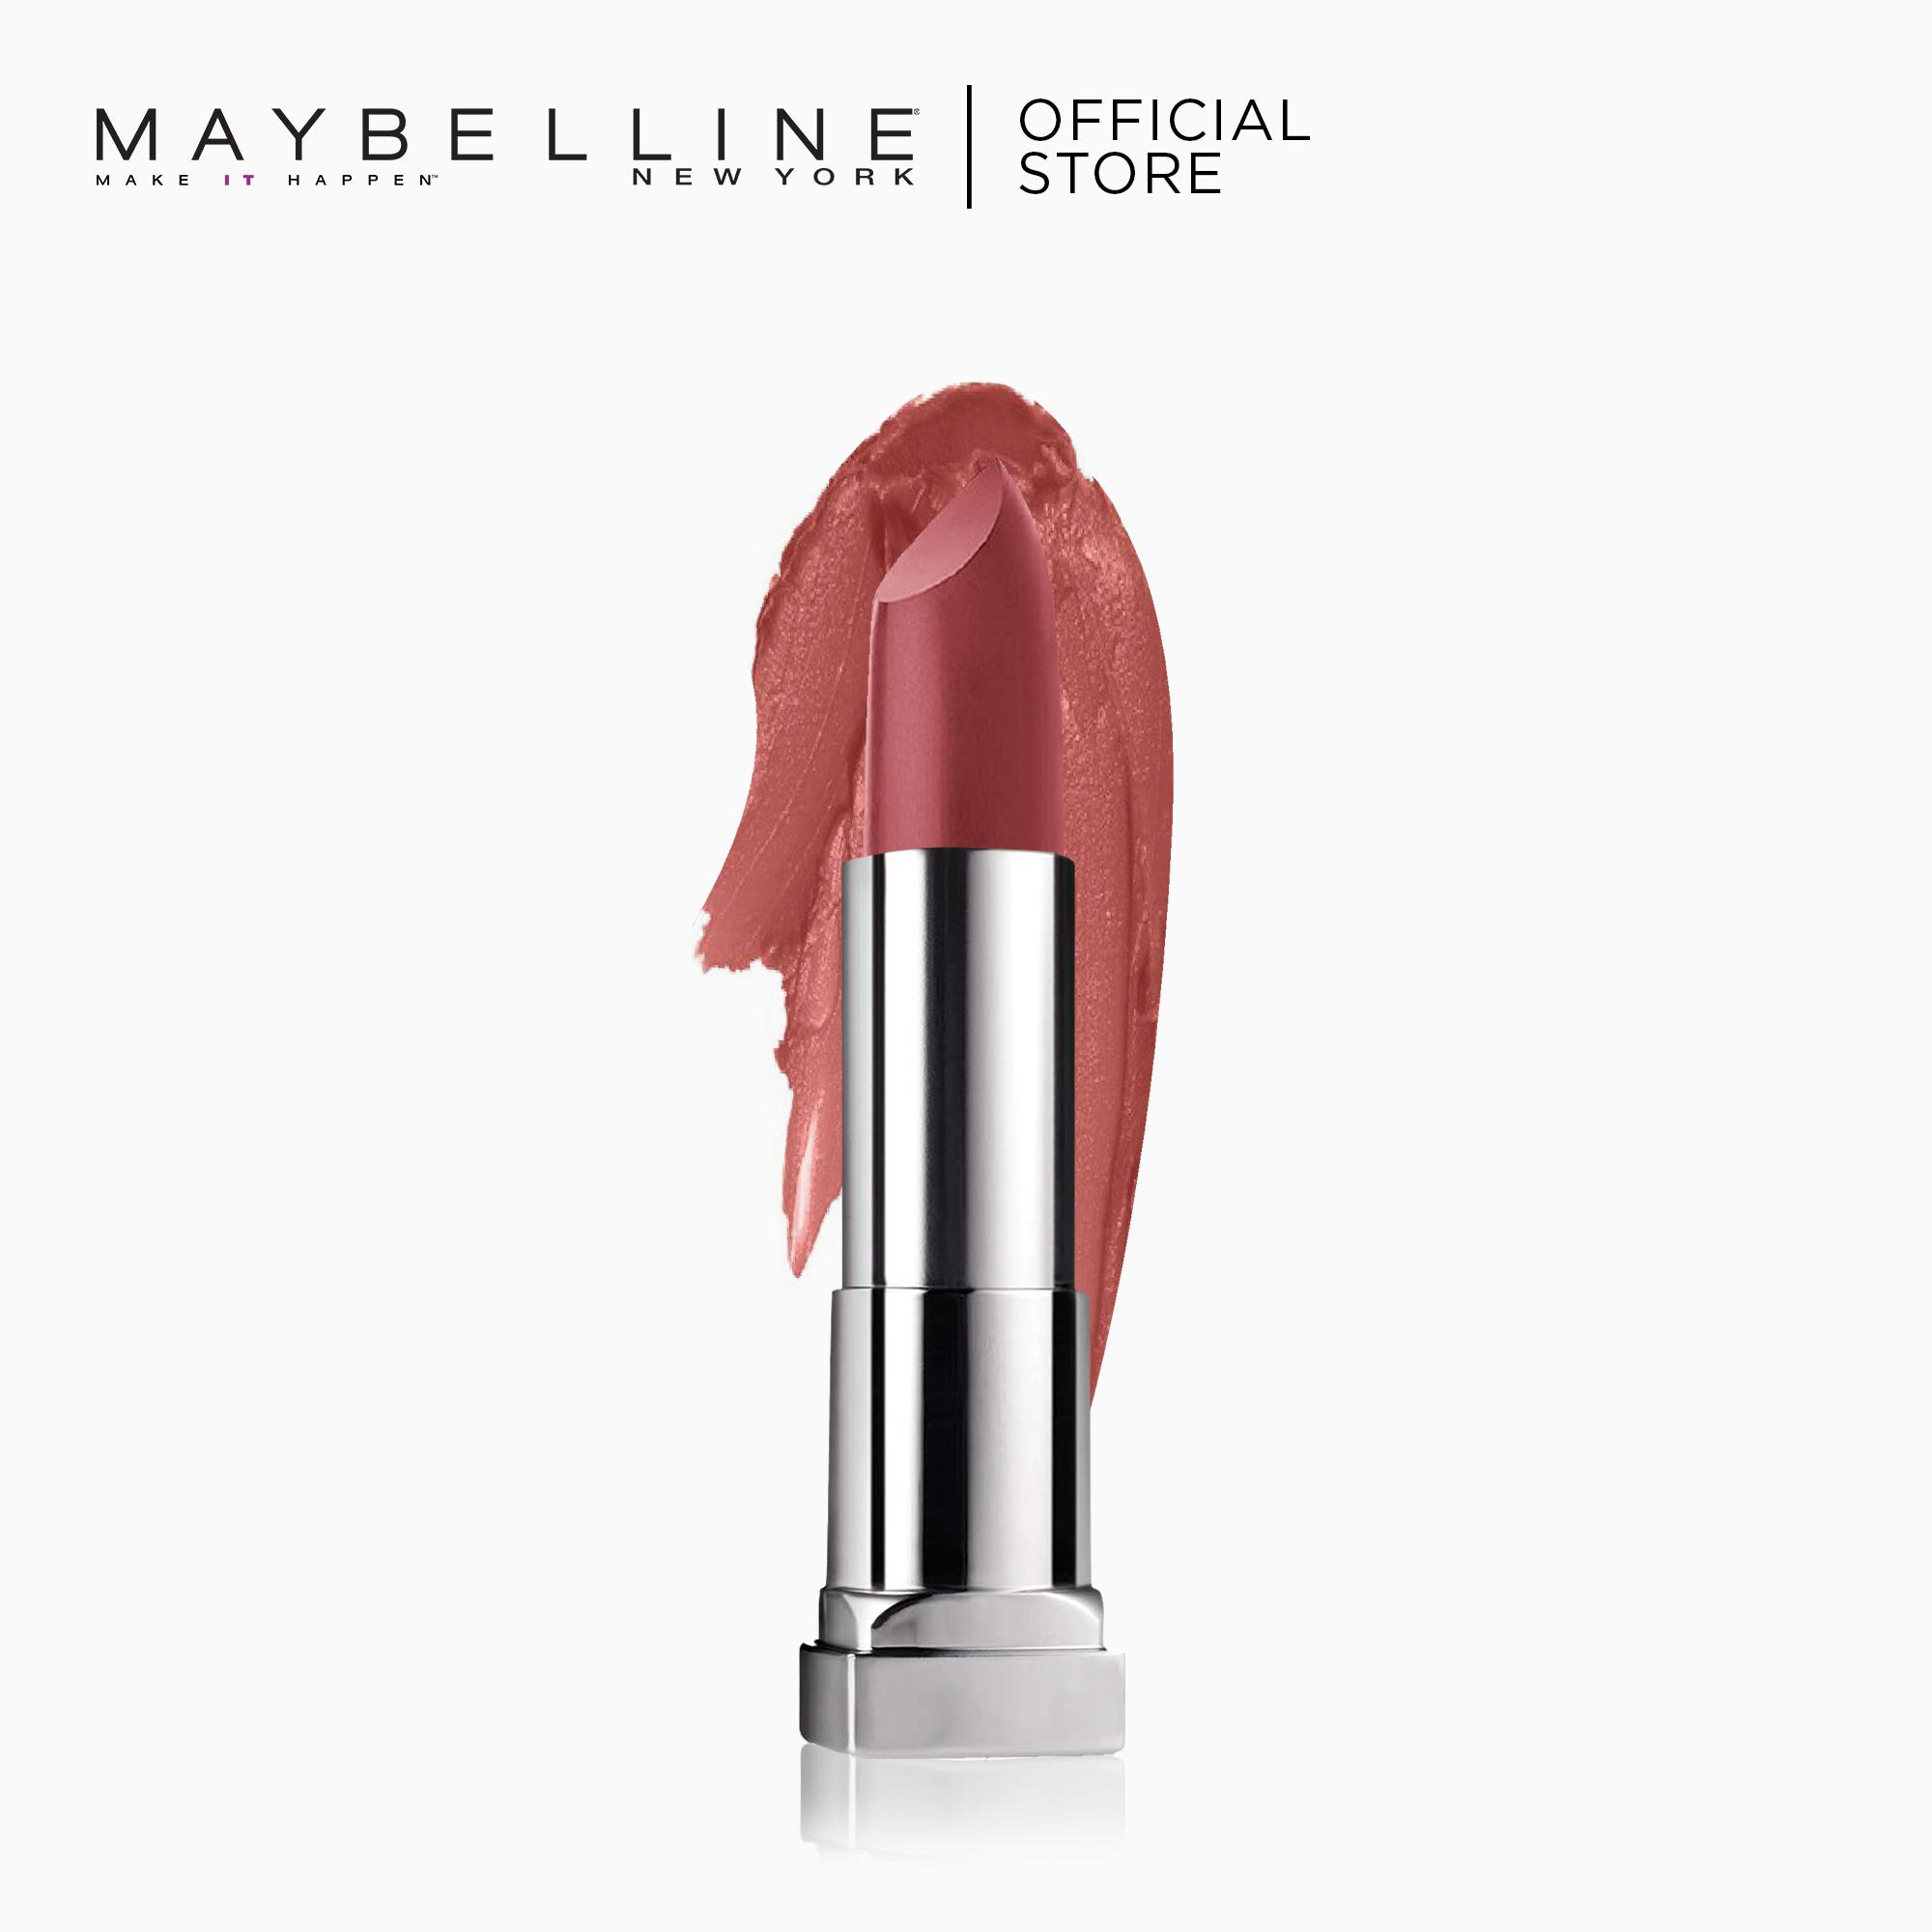 Creamy Matte Lipstick – 657 Nude Nuance [New Yorks #1] by Maybelline Color Sensational Philippines